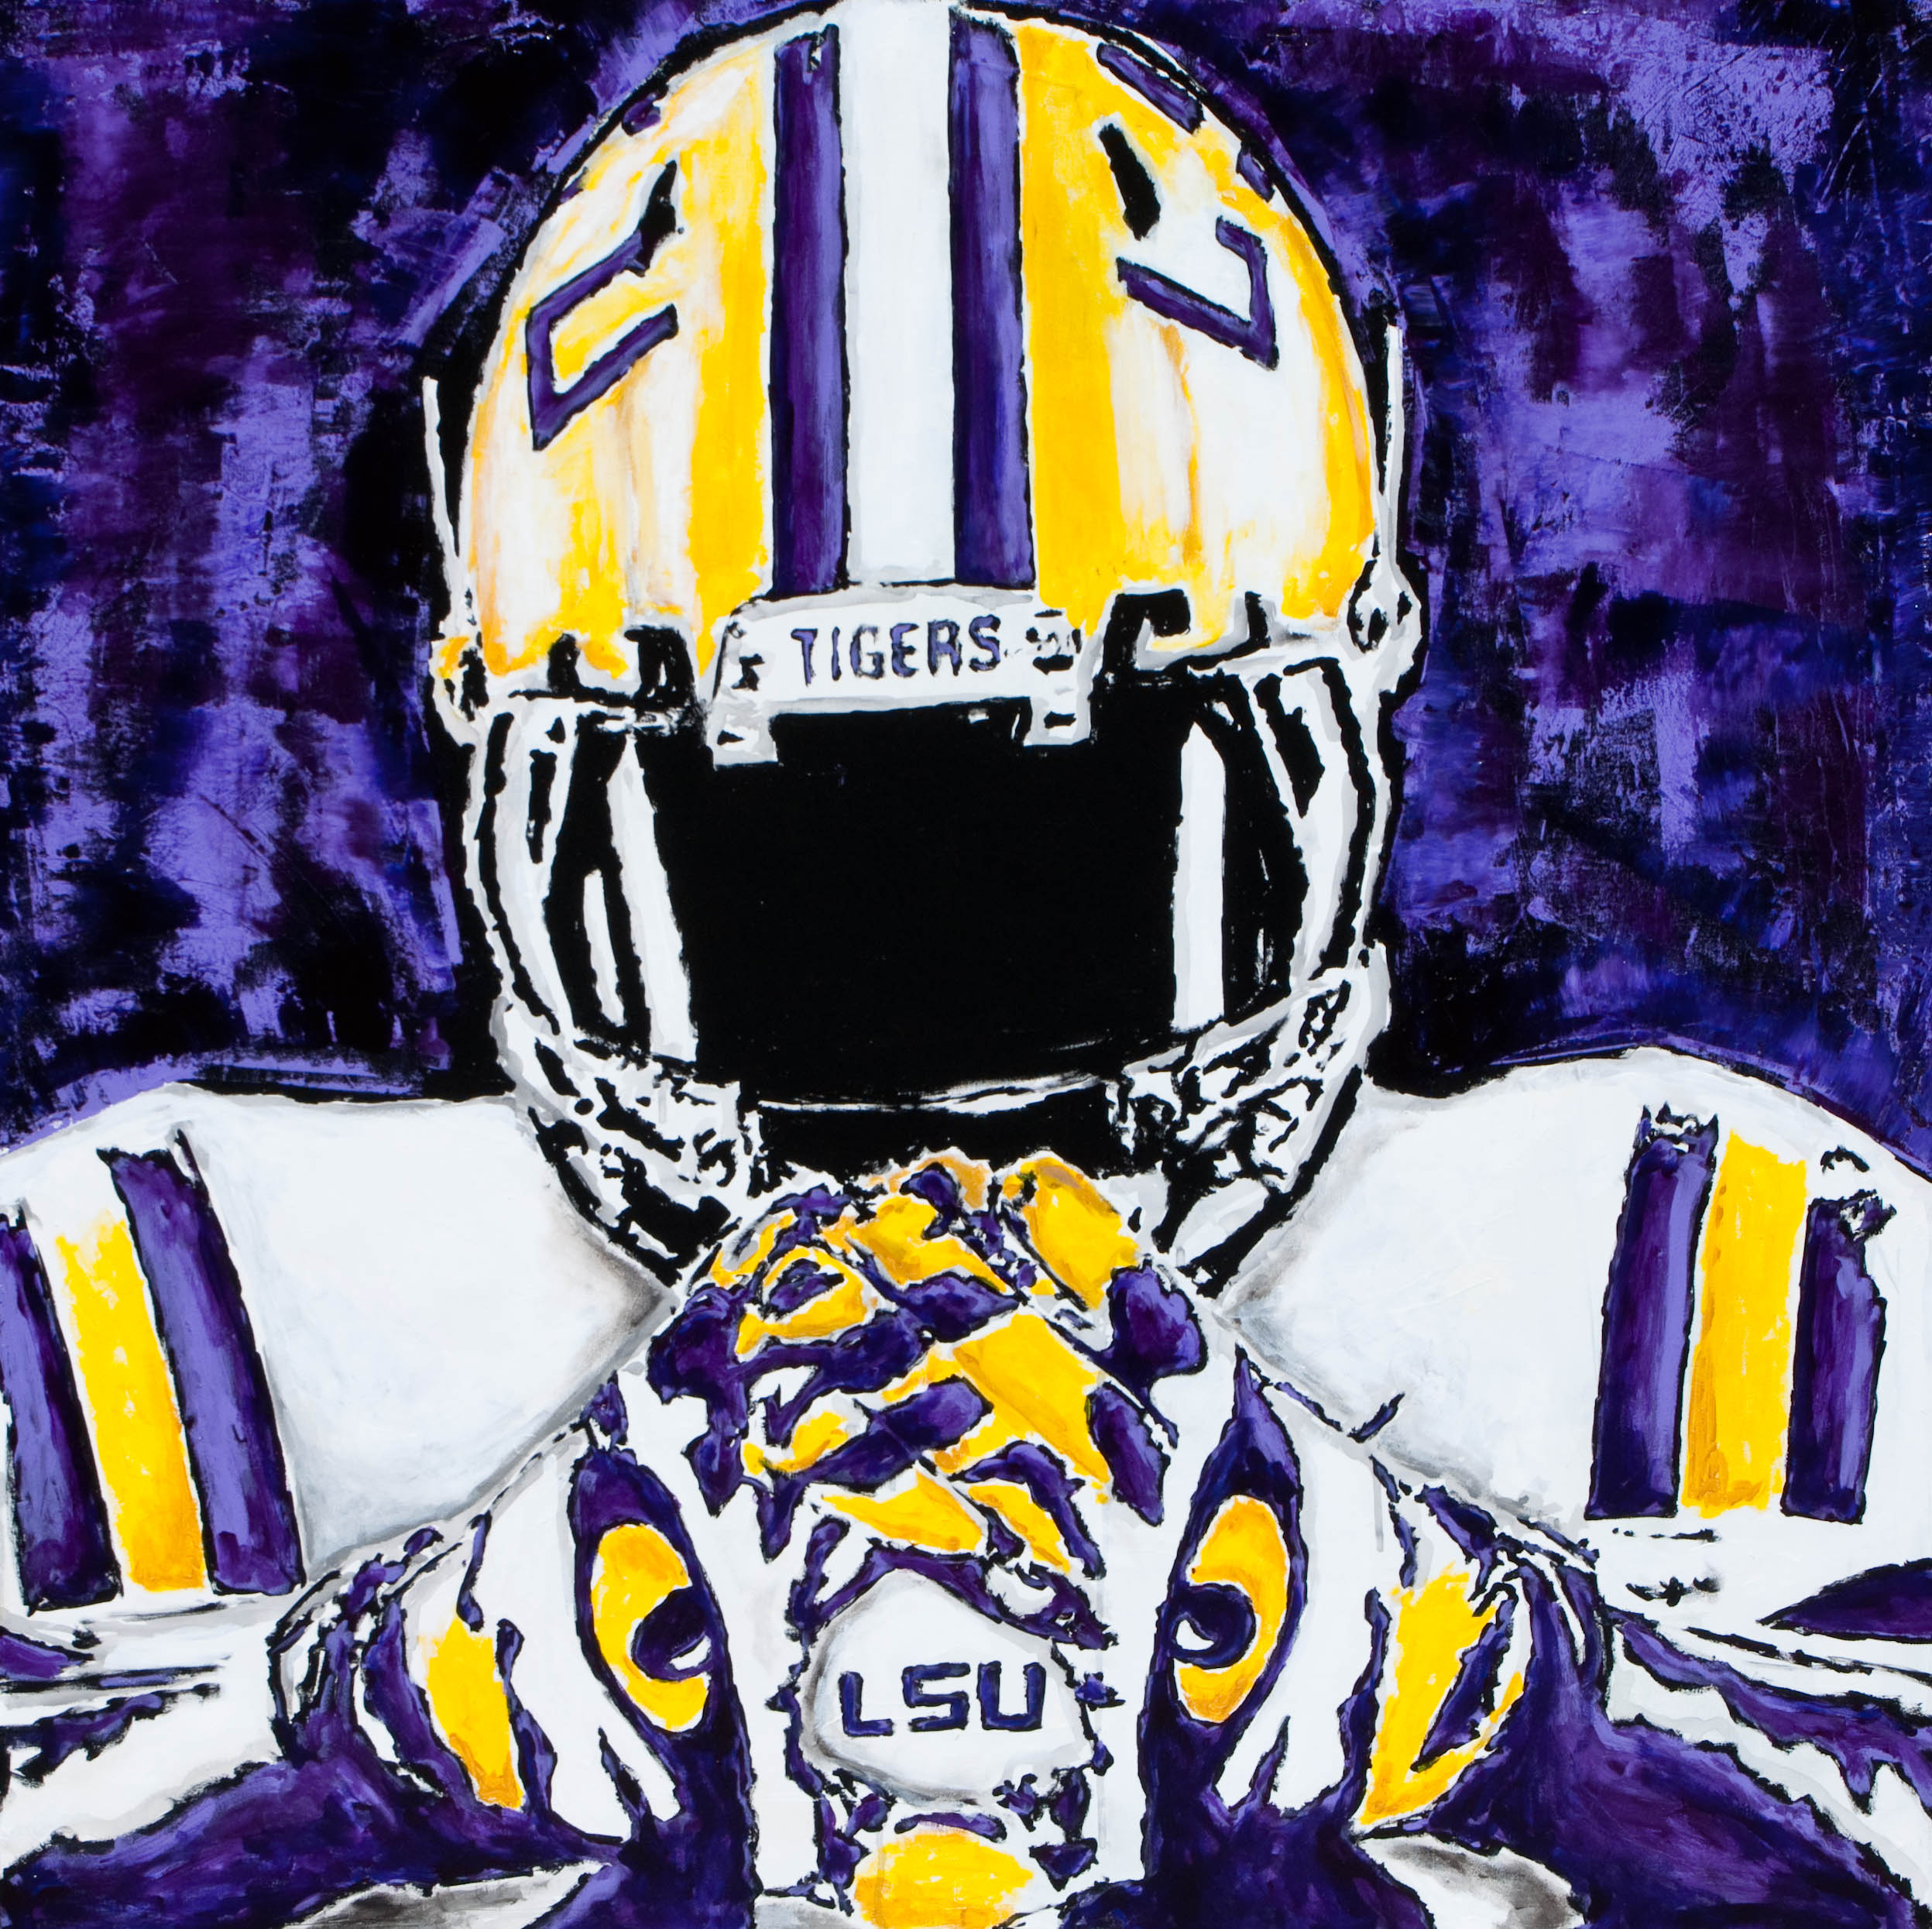 Free Download Lsu Football 2014 The Lsu Football Giclee 2495x2491 For Your Desktop Mobile Tablet Explore 49 2014 Lsu Football Wallpaper Lsu Football Wallpaper 2015 Hd Lsu Football Wallpaper Lsu Football Wallpaper For Computer